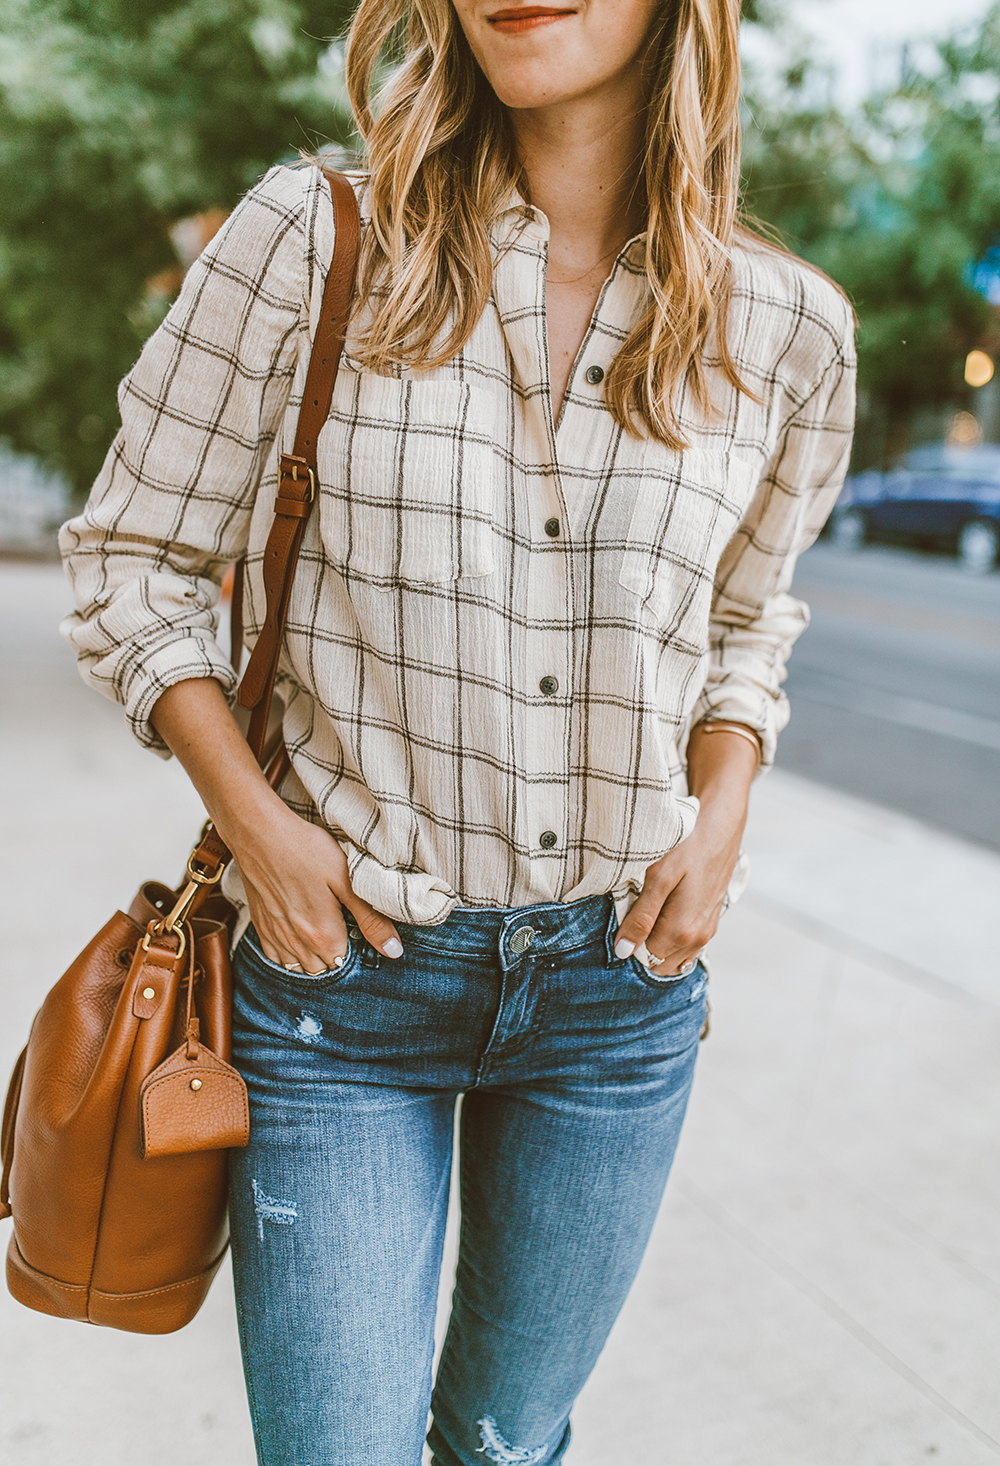 livvyland-blog-olivia-watson-austin-texas-fashion-style-blogger-nordstrom-anniversary-sale-6